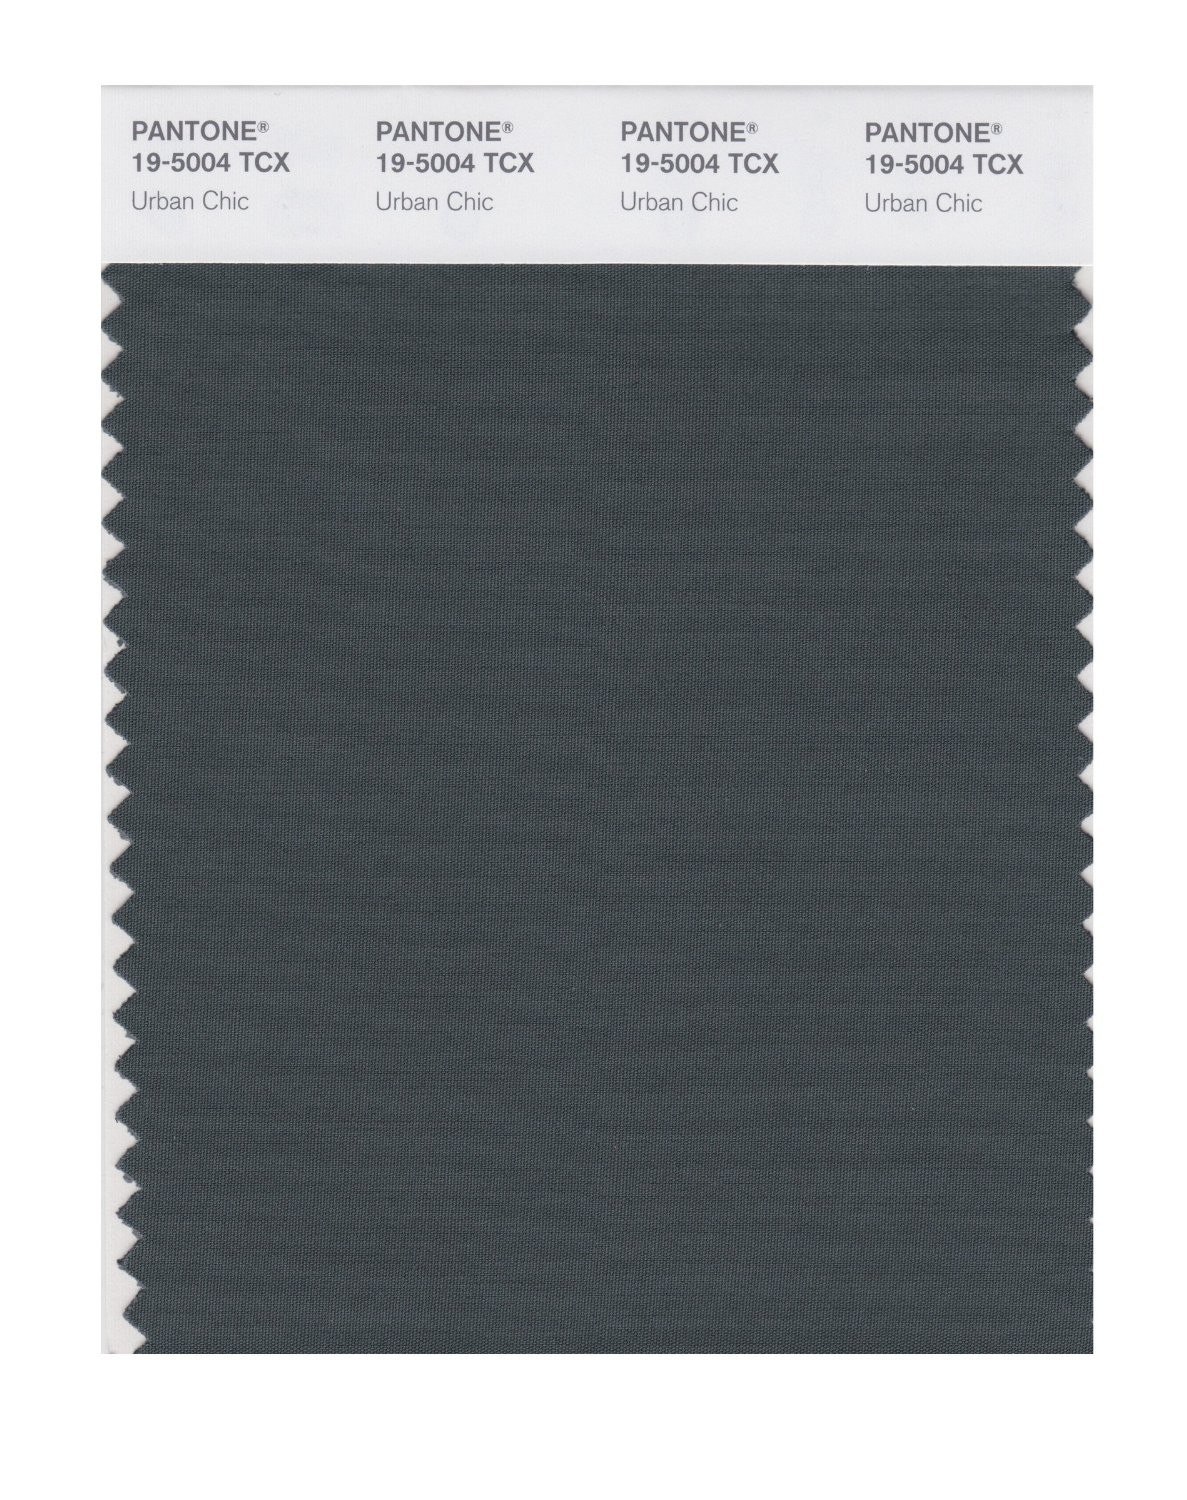 Pantone 19-5004 TCX Swatch Card Urban Chic